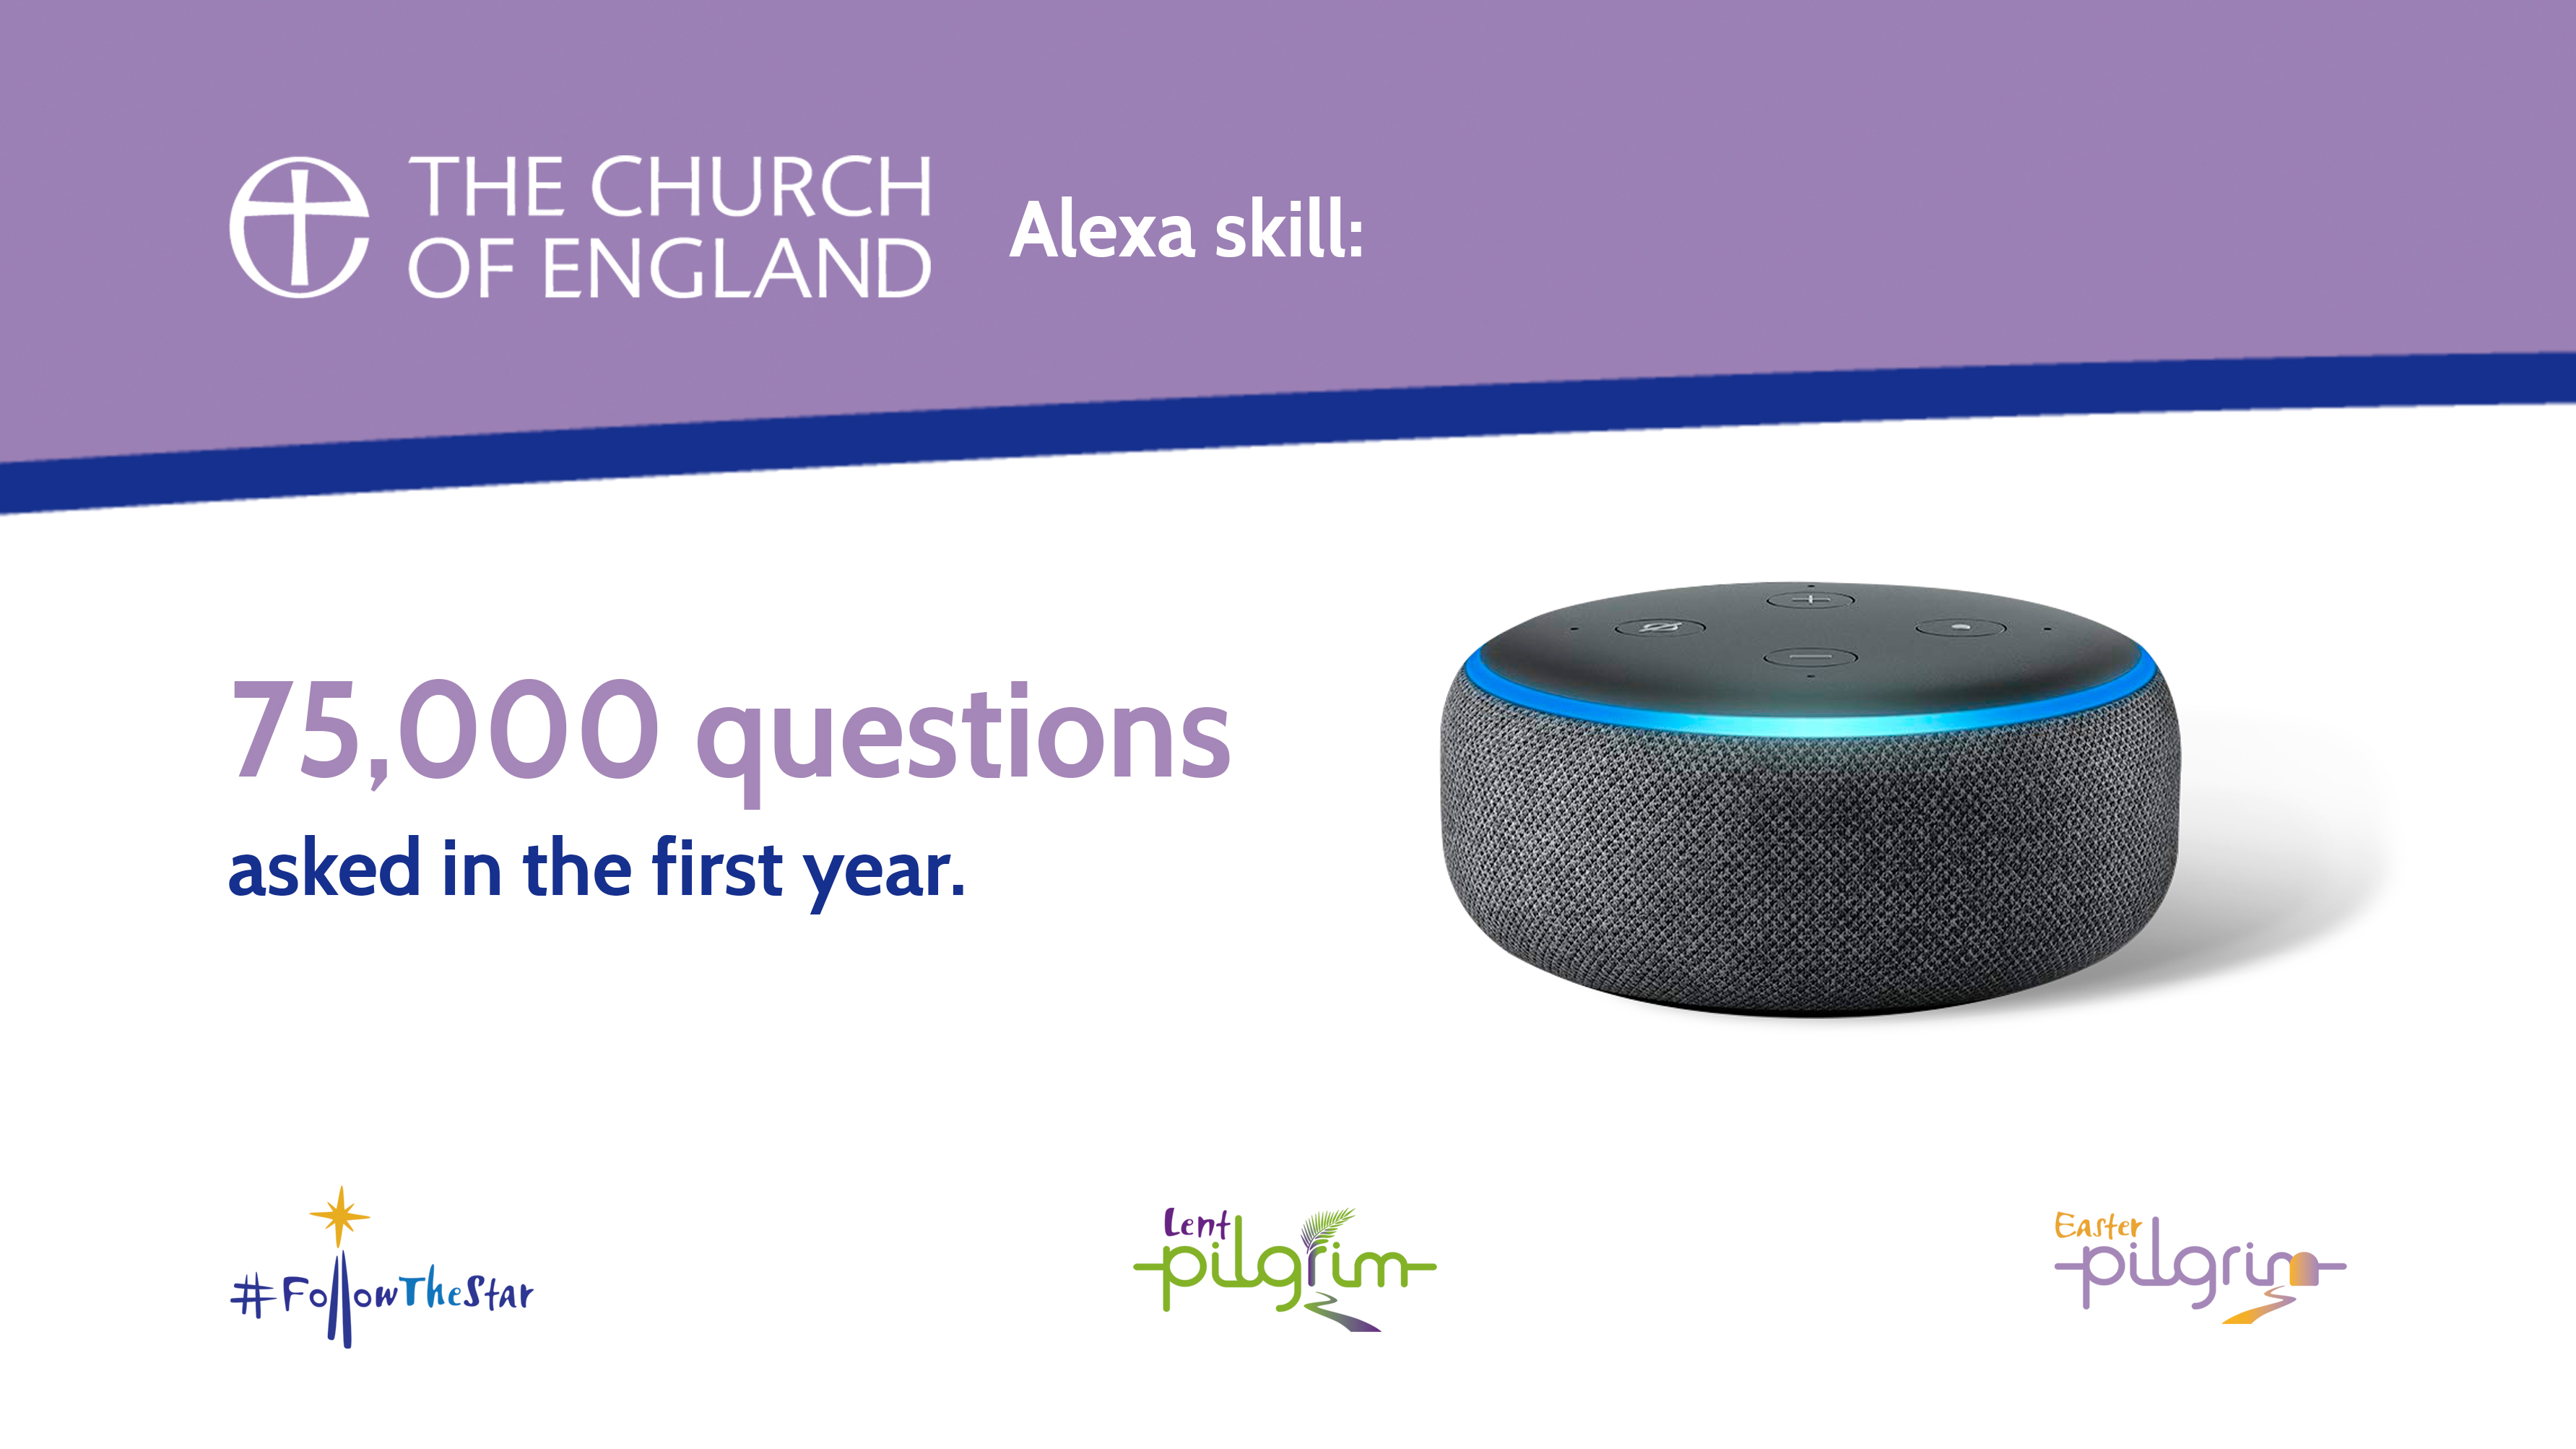 The Church of England Alexa skill has been asked 75,000 questions.